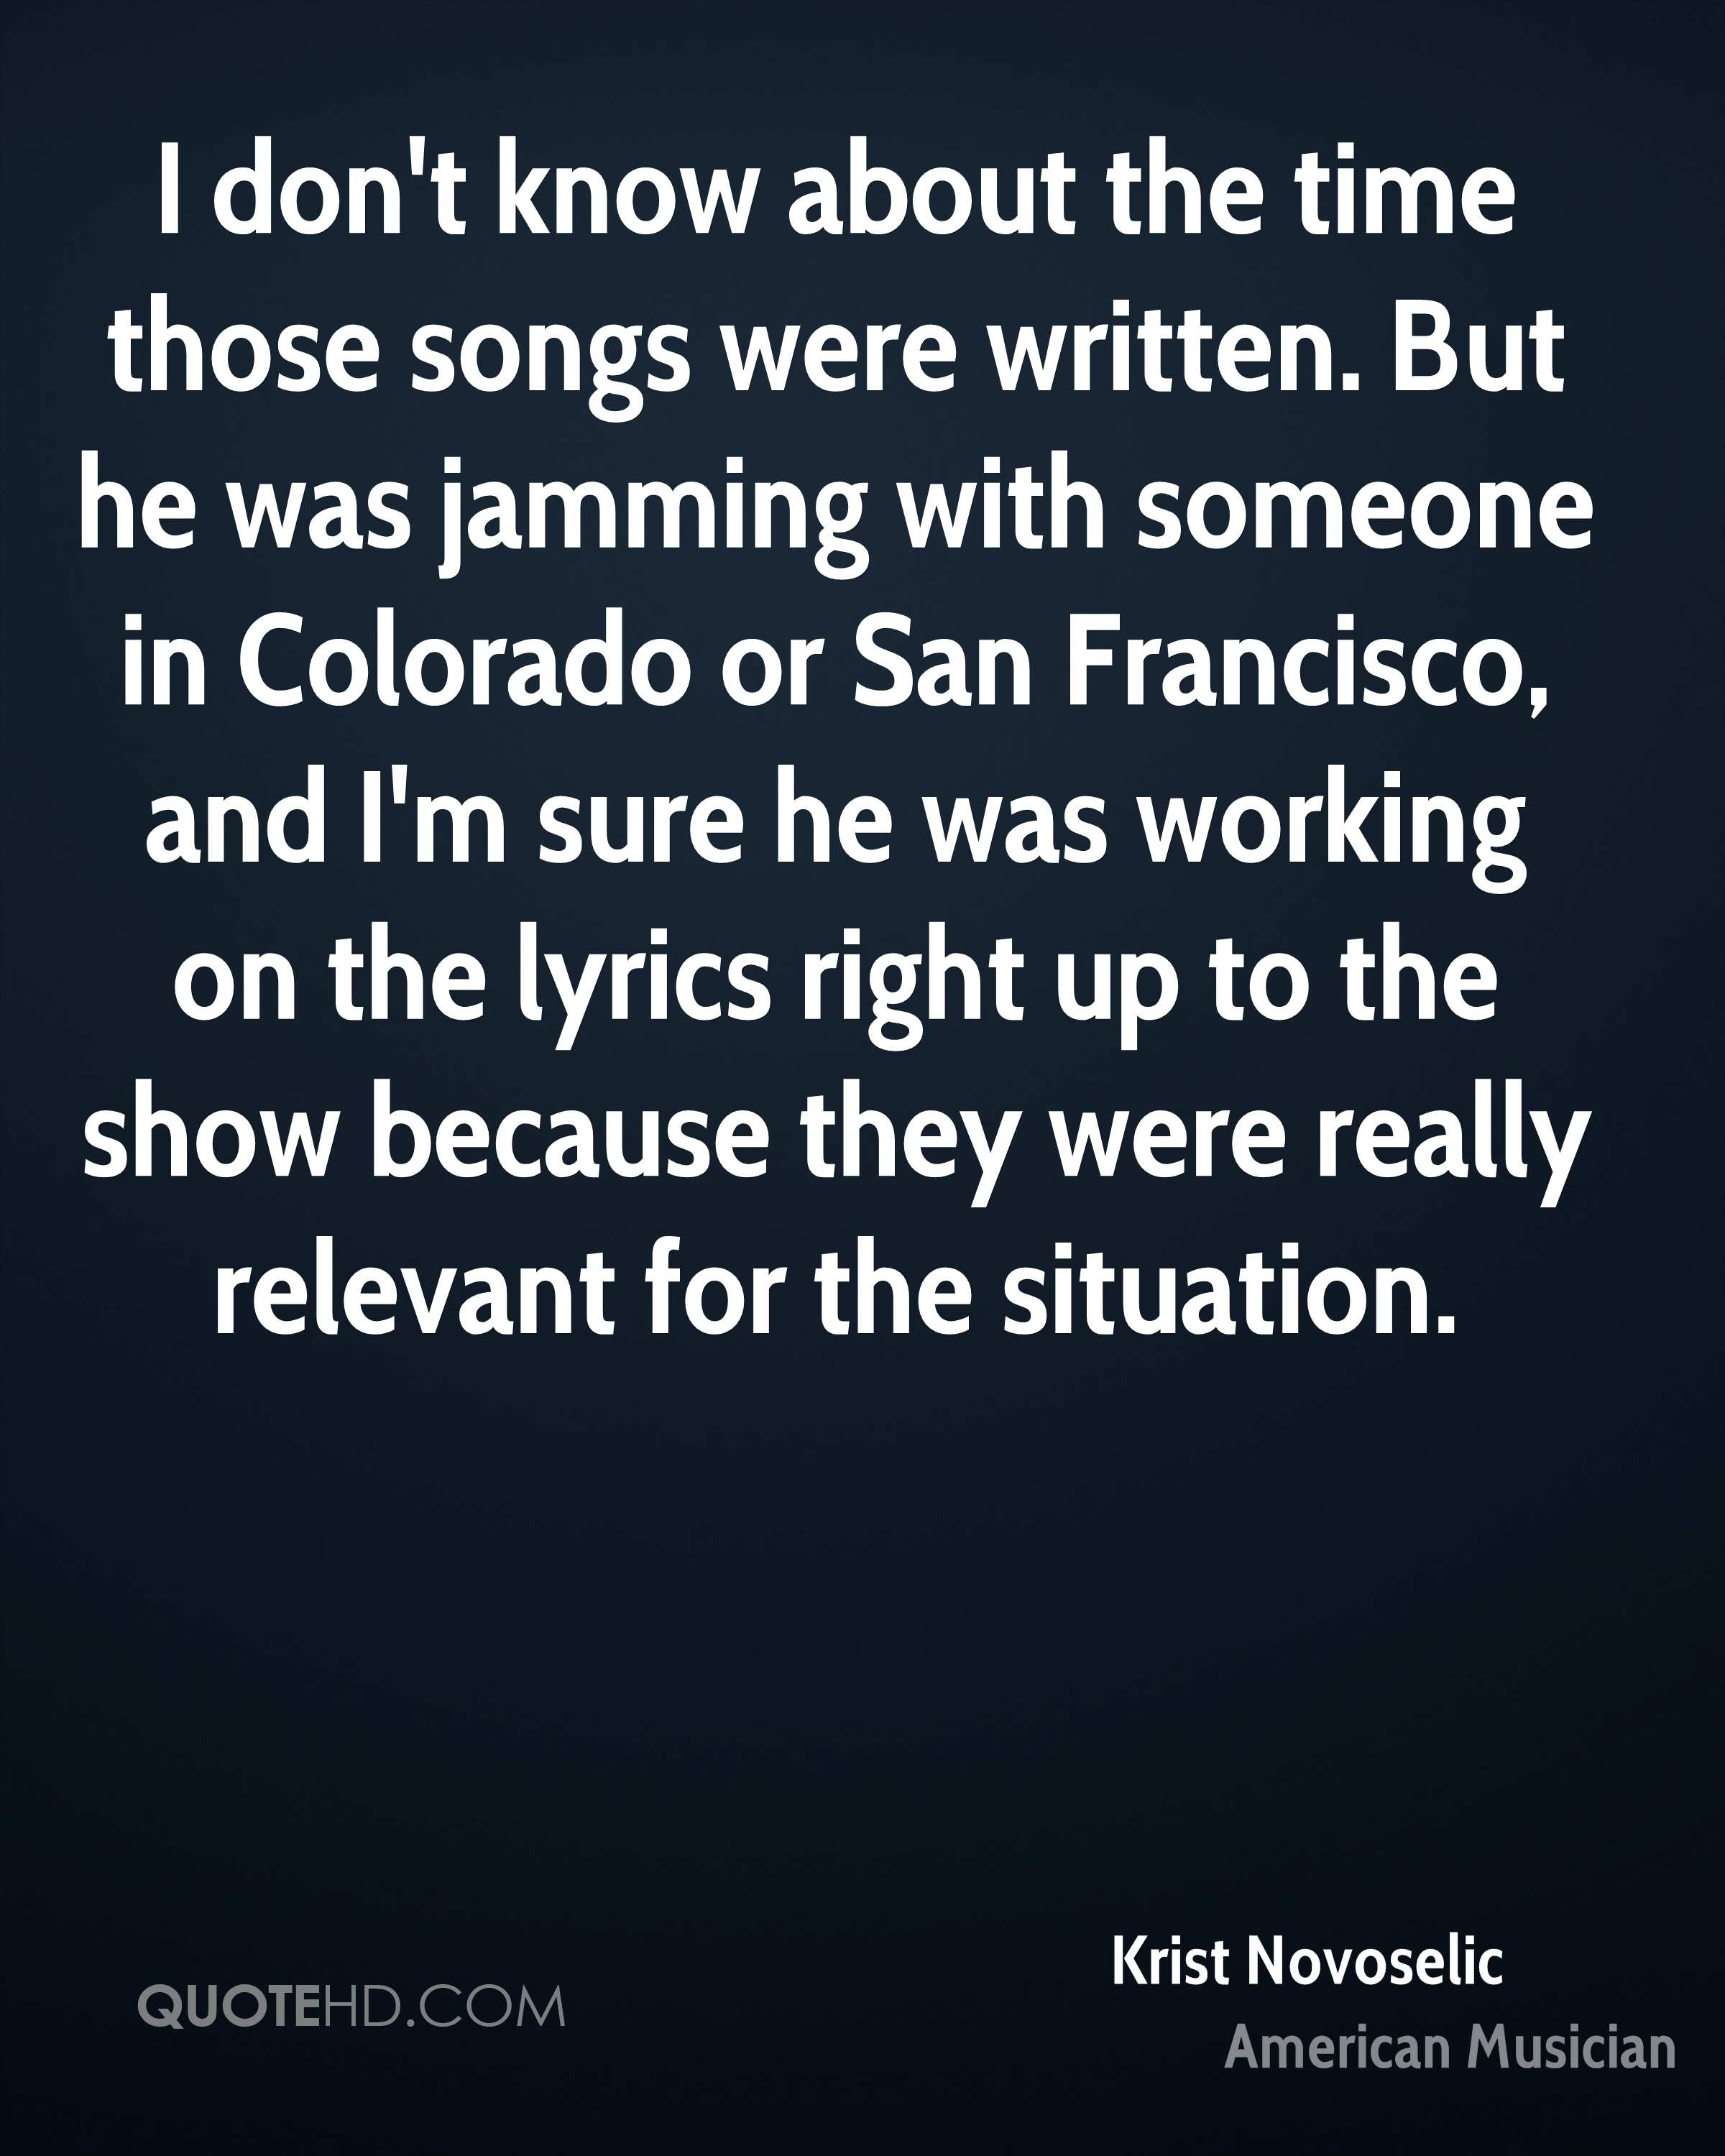 I don't know about the time those songs were written. But he was jamming with someone in Colorado or San Francisco, and I'm sure he was working on the lyrics right up to the show because they were really relevant for the situation.